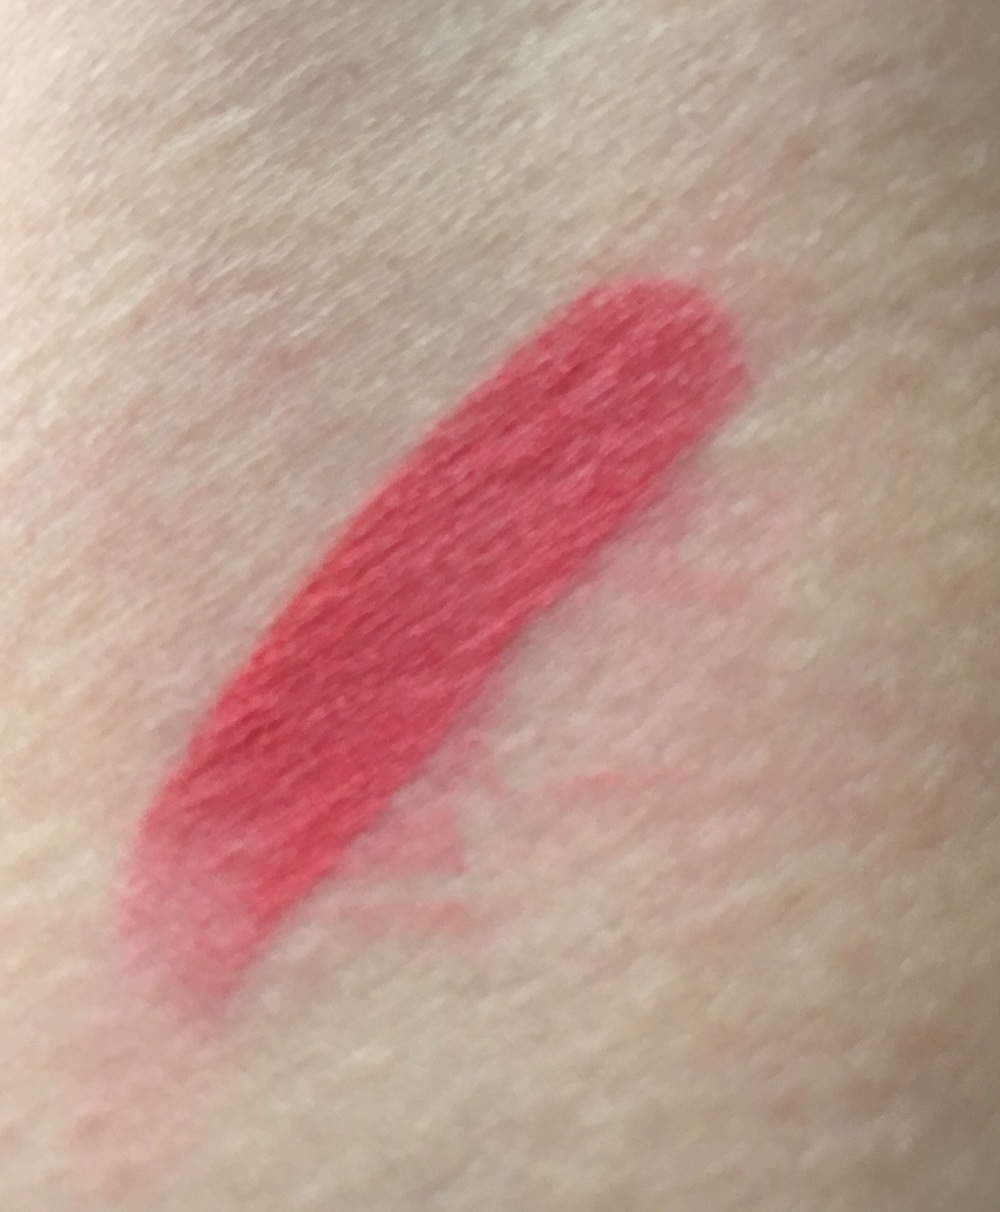 Swatch of glo minerals Suede Matte Stick in Punch.